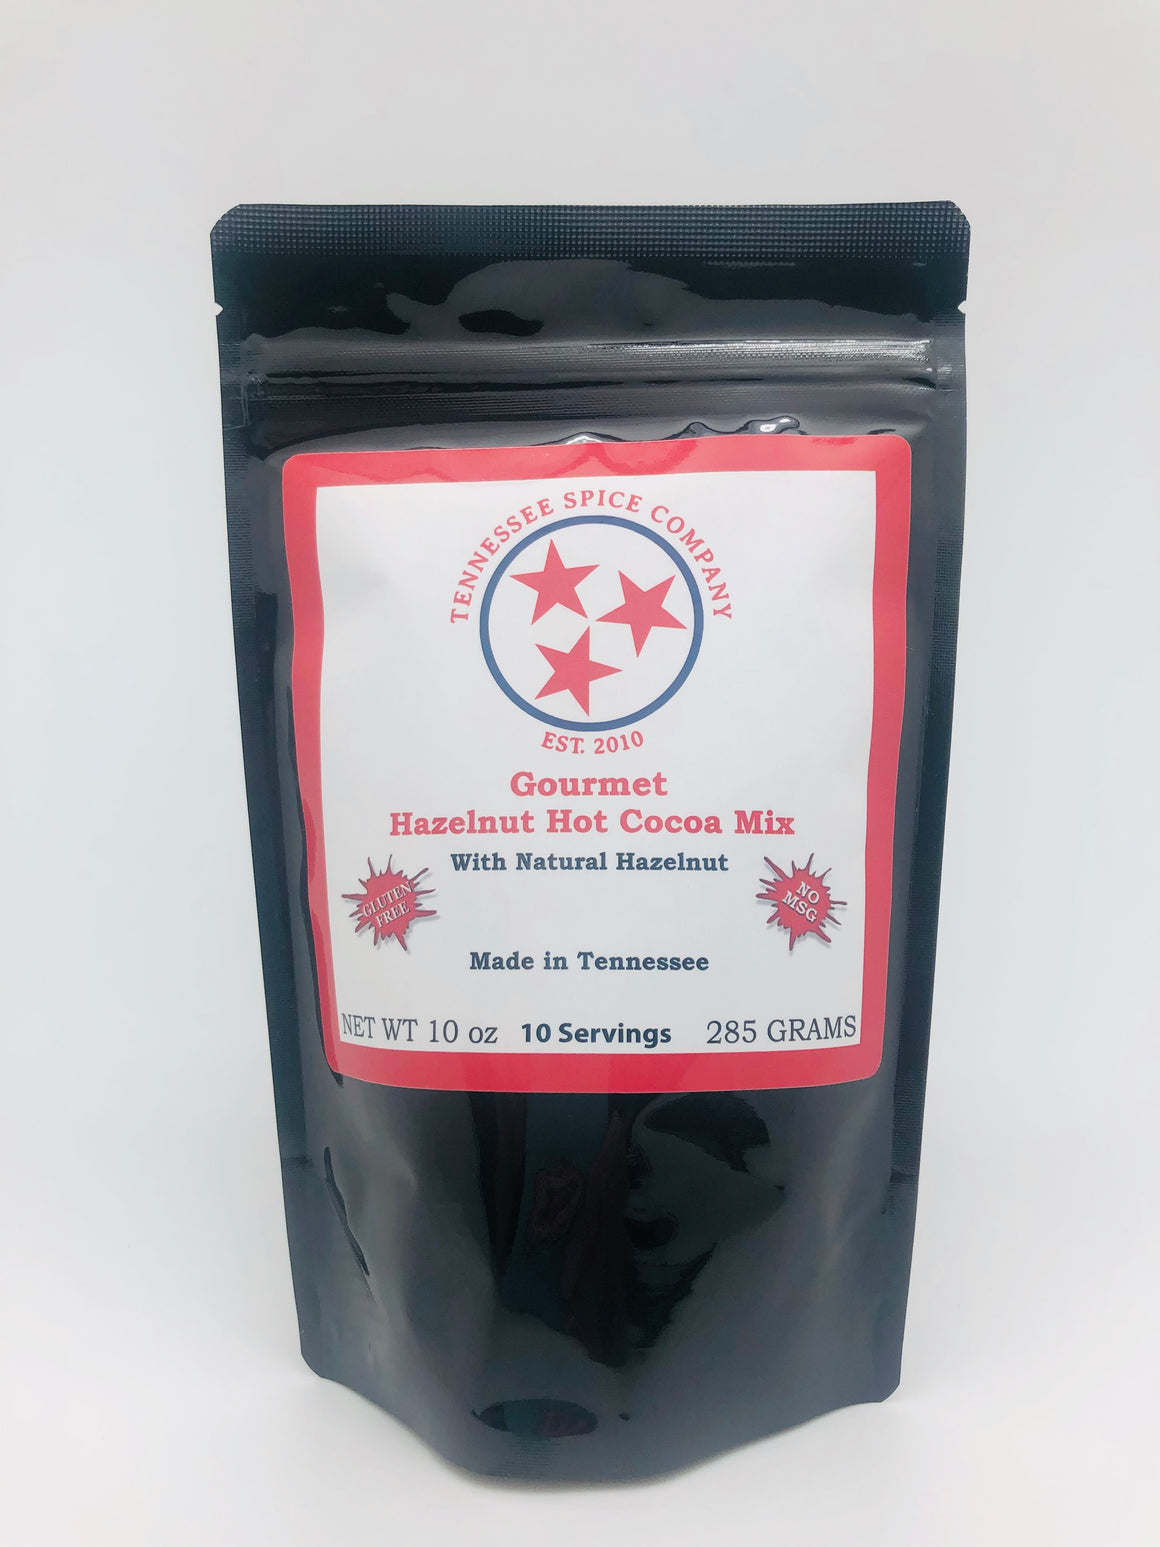 Gourmet Hazelnut Hot Cocoa Mix - TN Spice